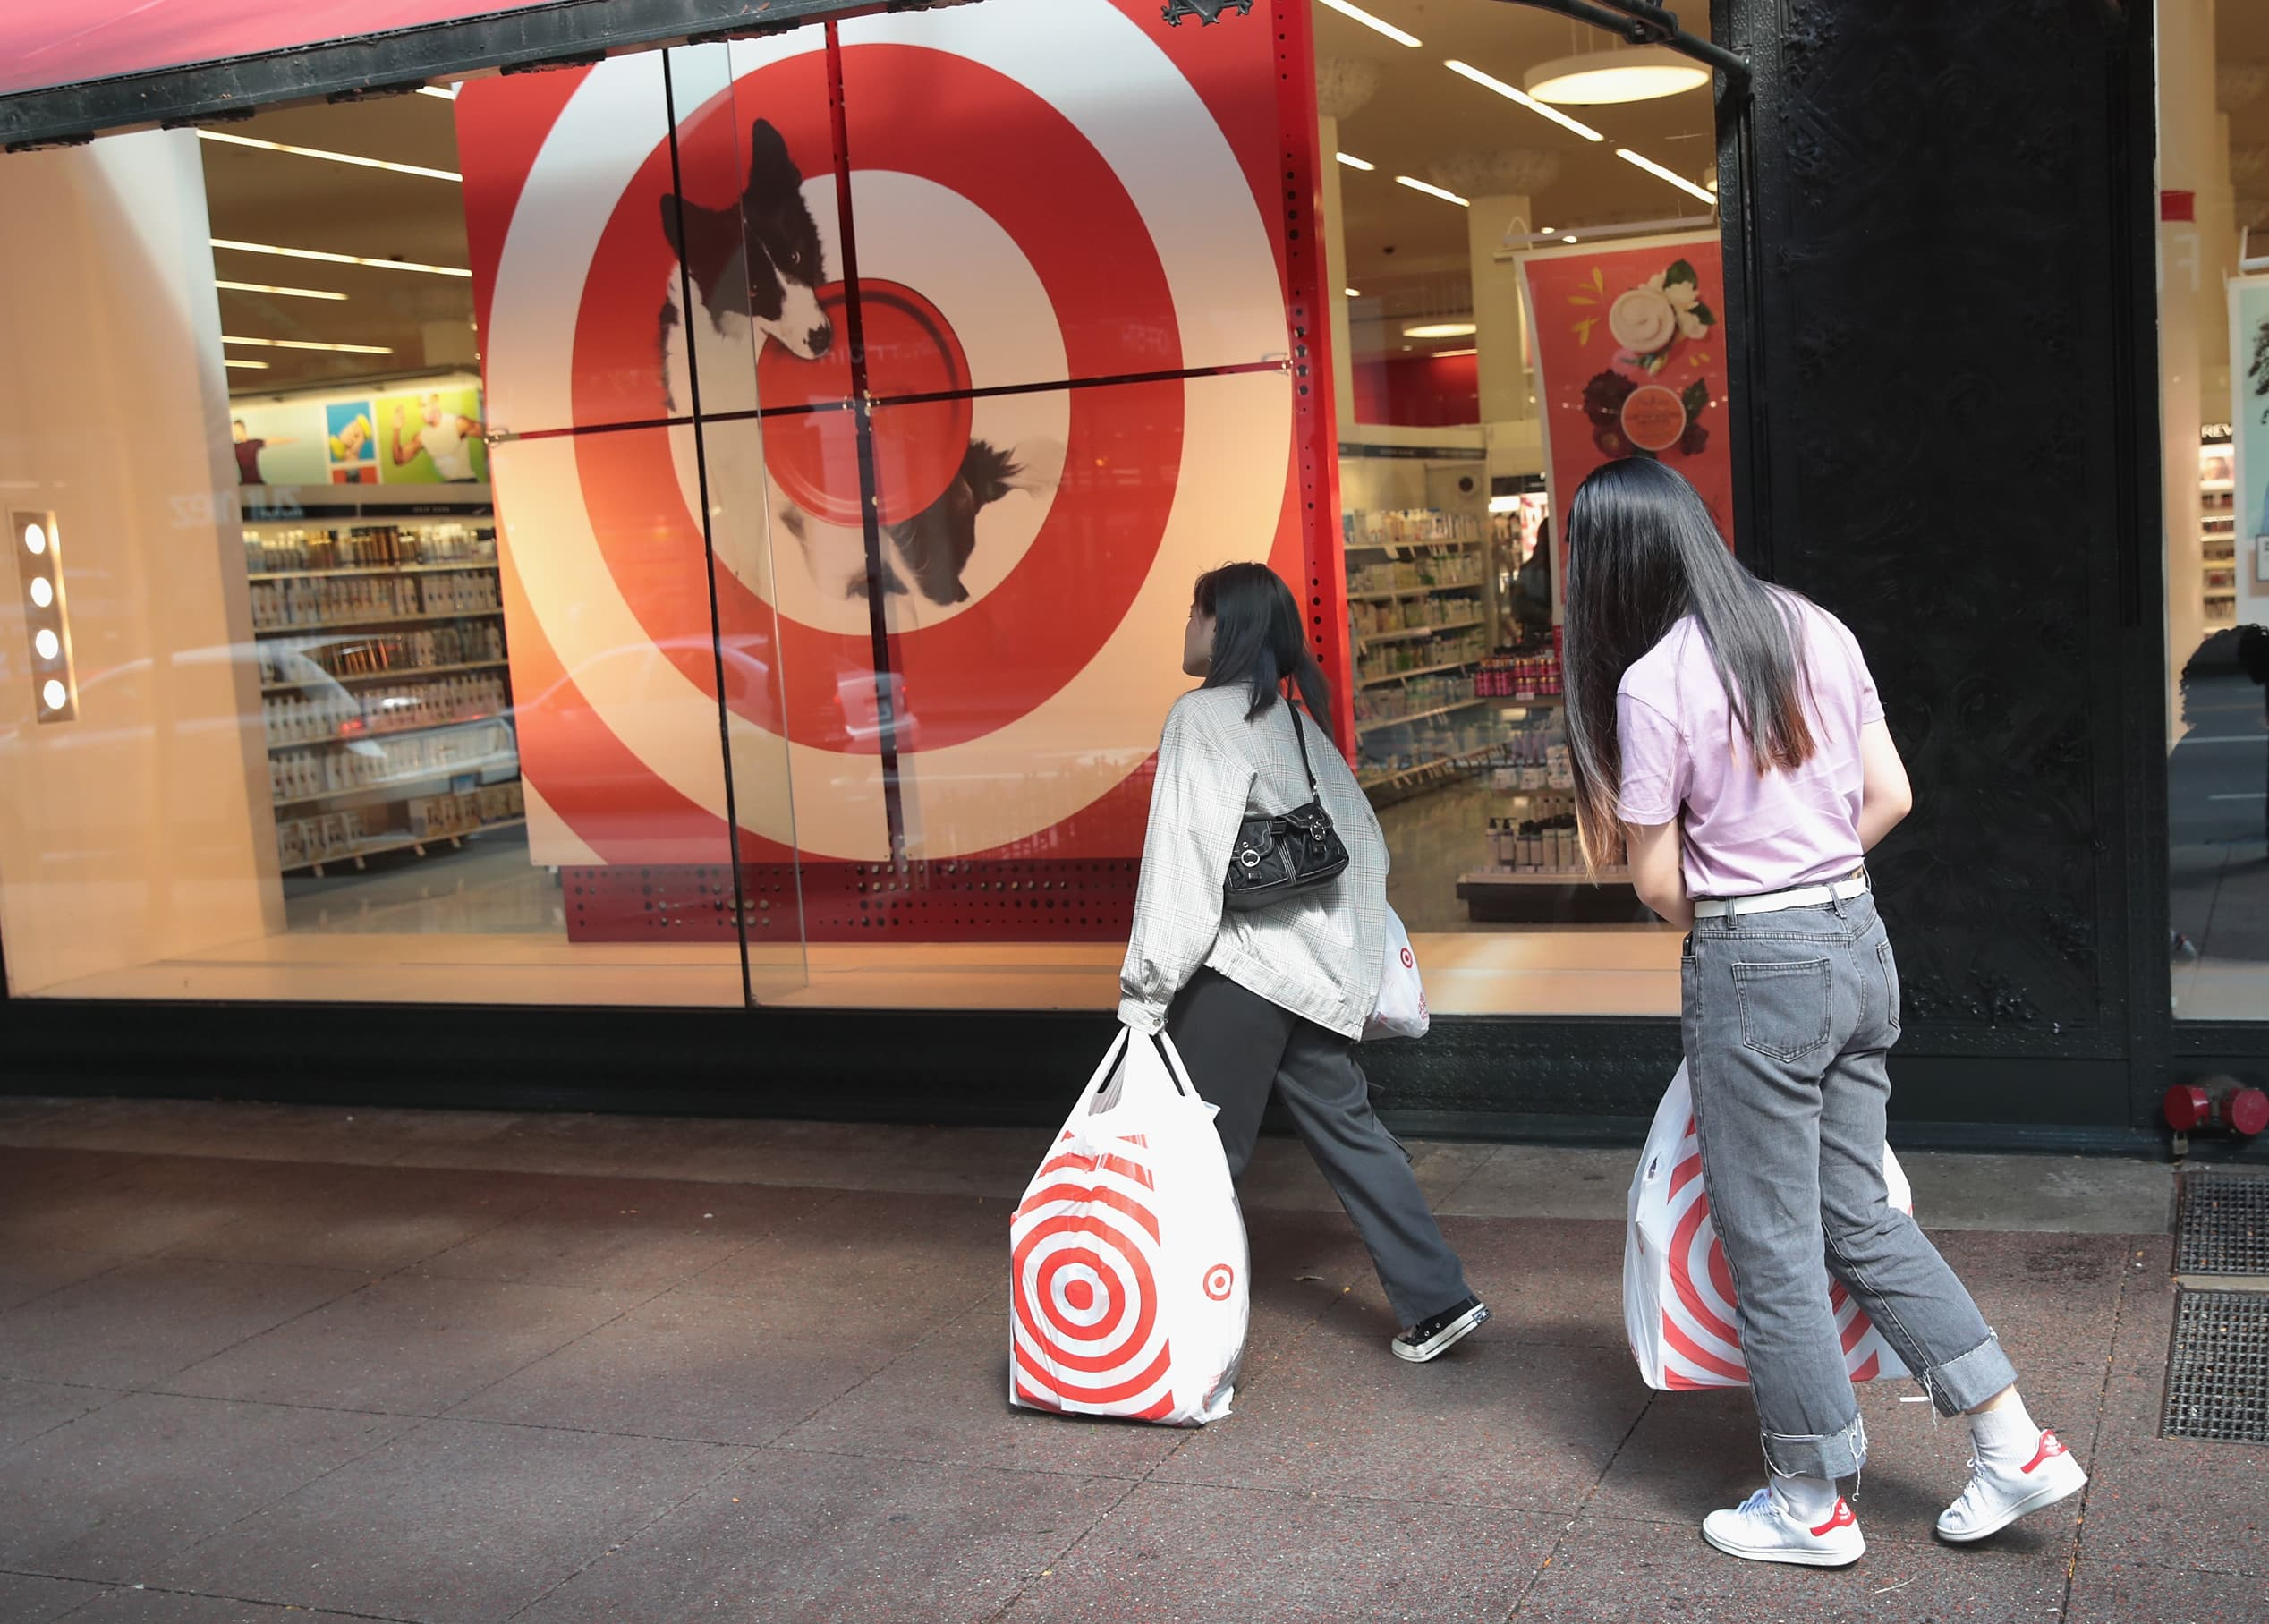 Target shares hit record highs after the retailer blows out earnings estimates